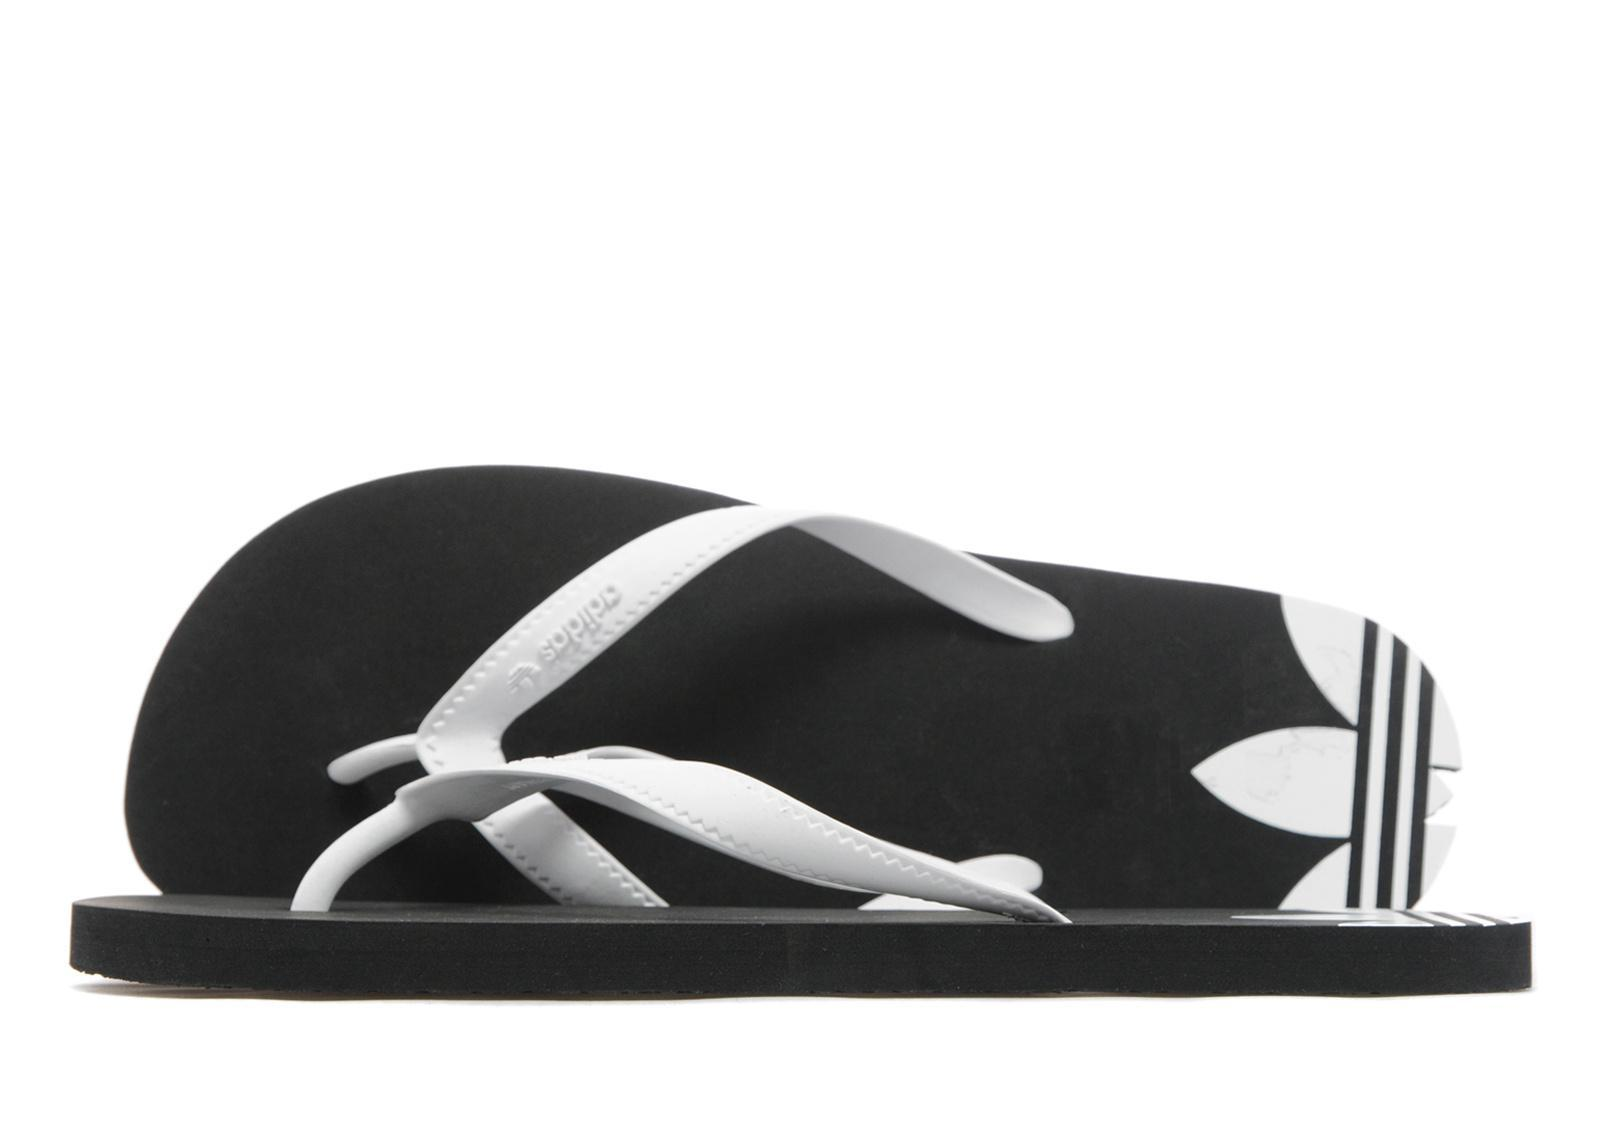 de2c3fbc1f406 Lyst - Adidas Originals Adi Sun Flip Flops in Black for Men